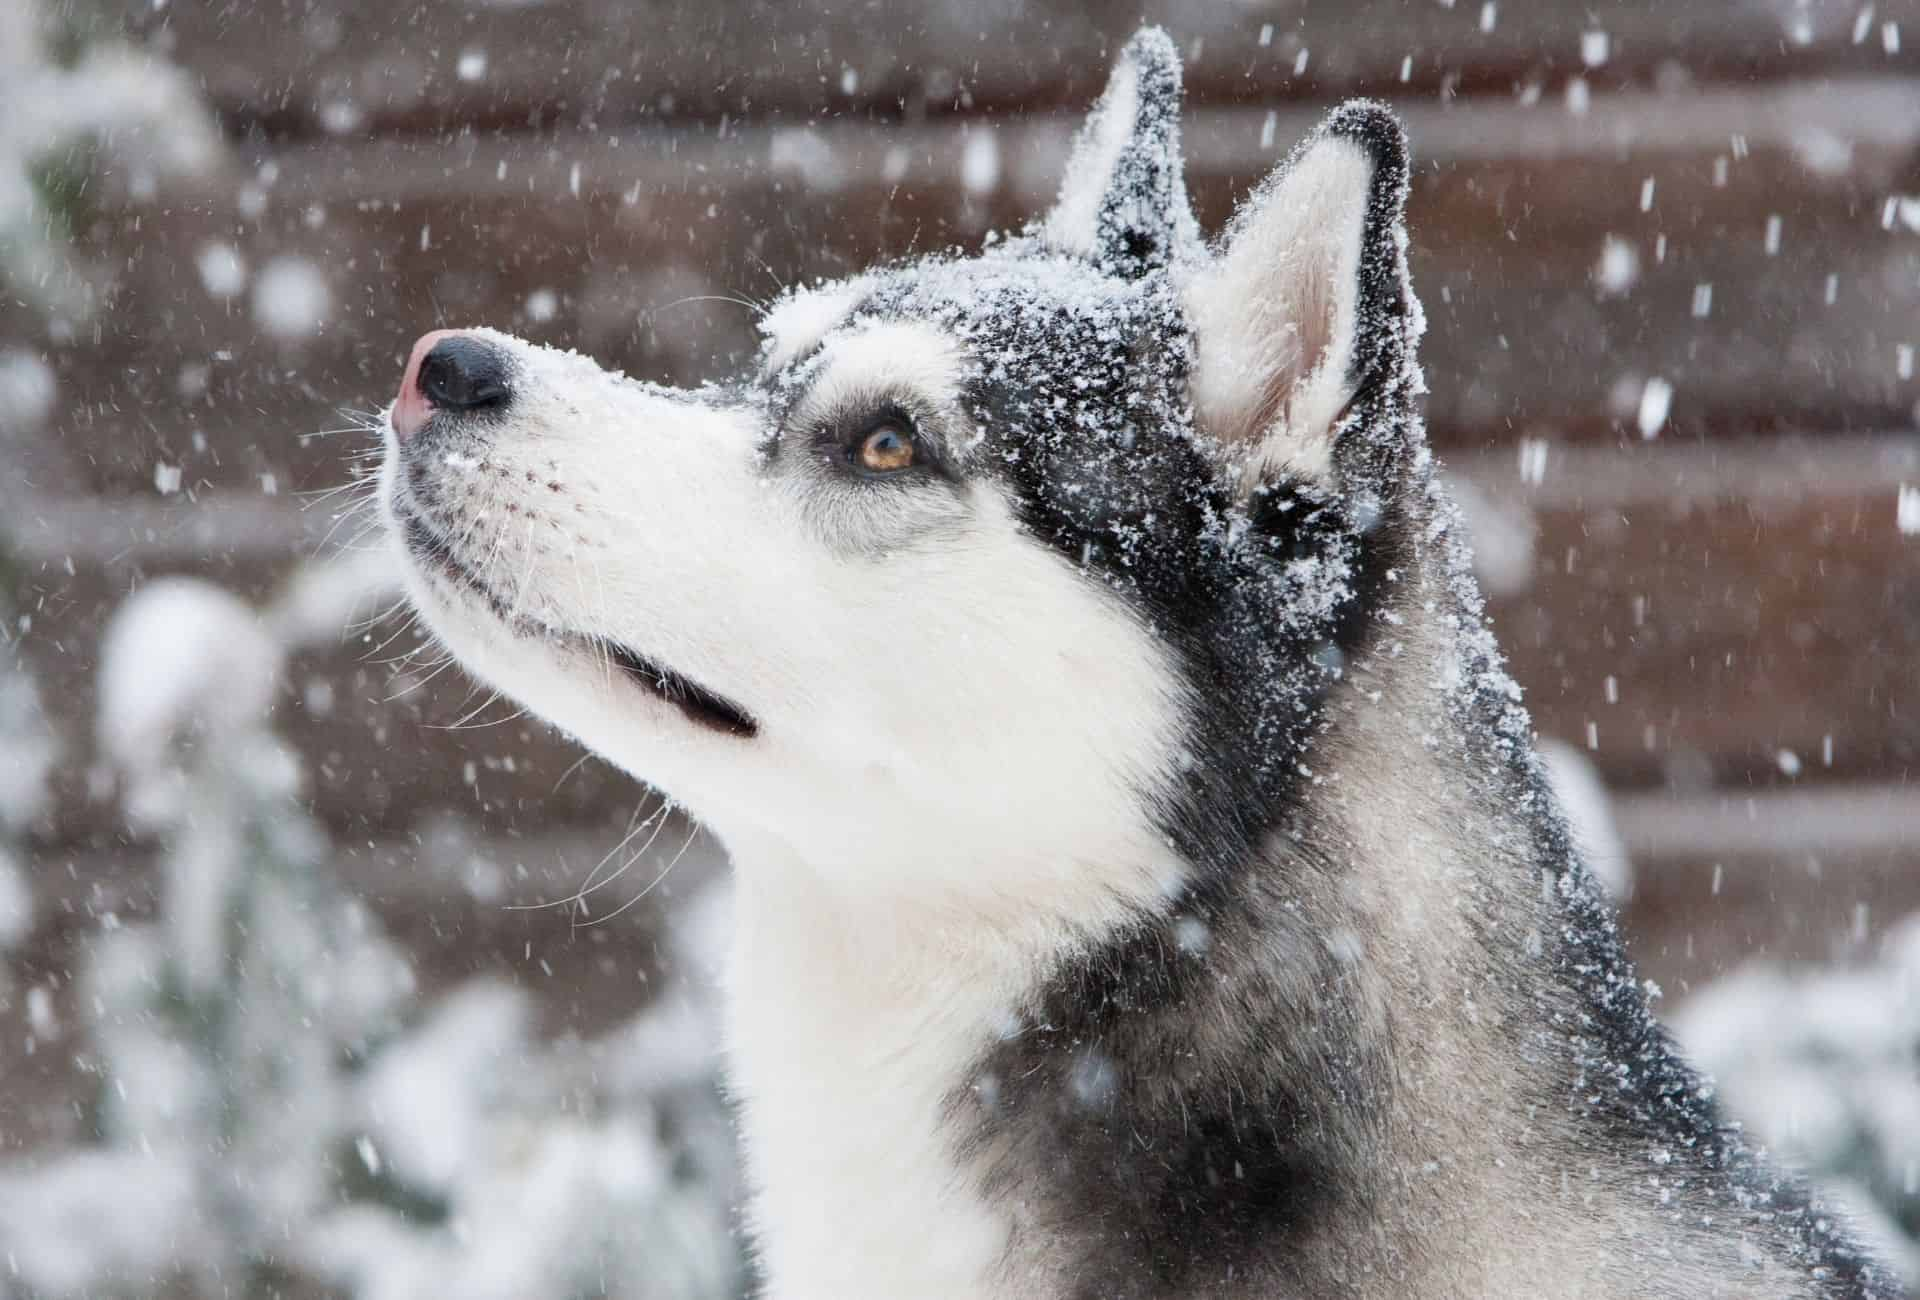 Close-up of a Husky looking up to see the snow falling.